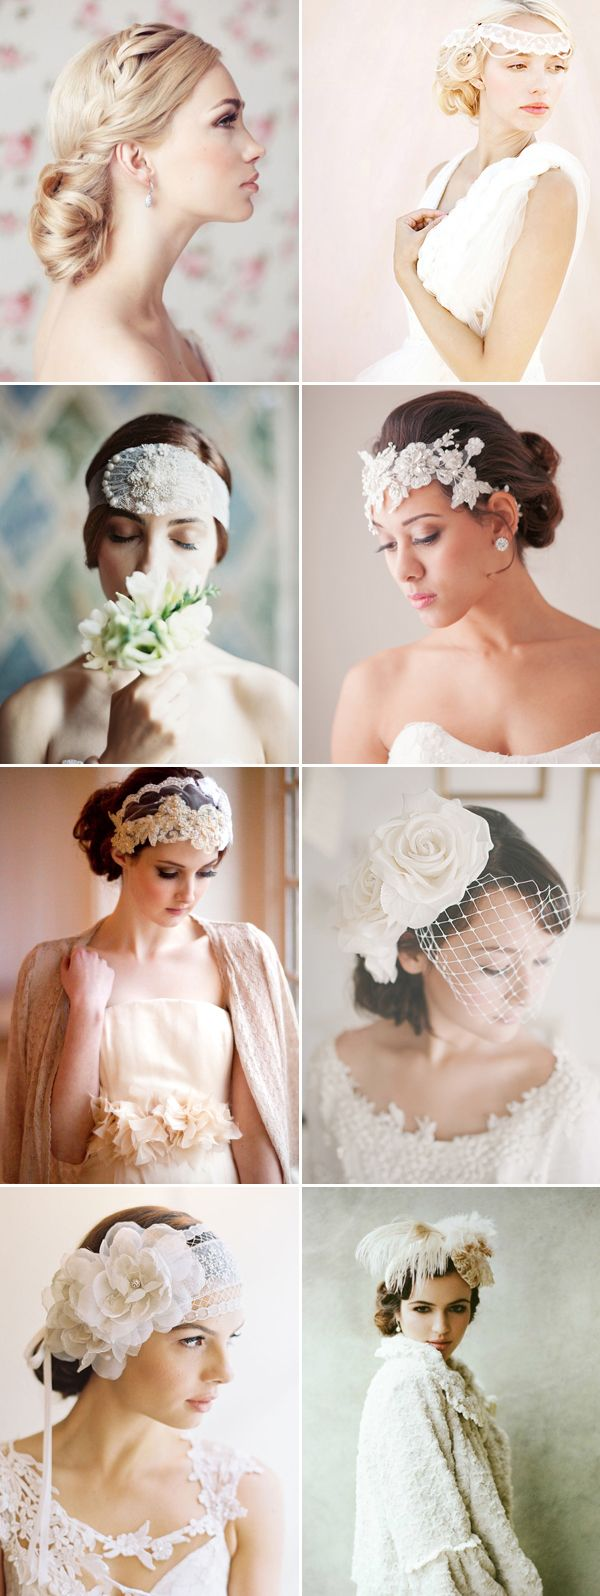 93 best bridal hair design images on pinterest | hairstyles